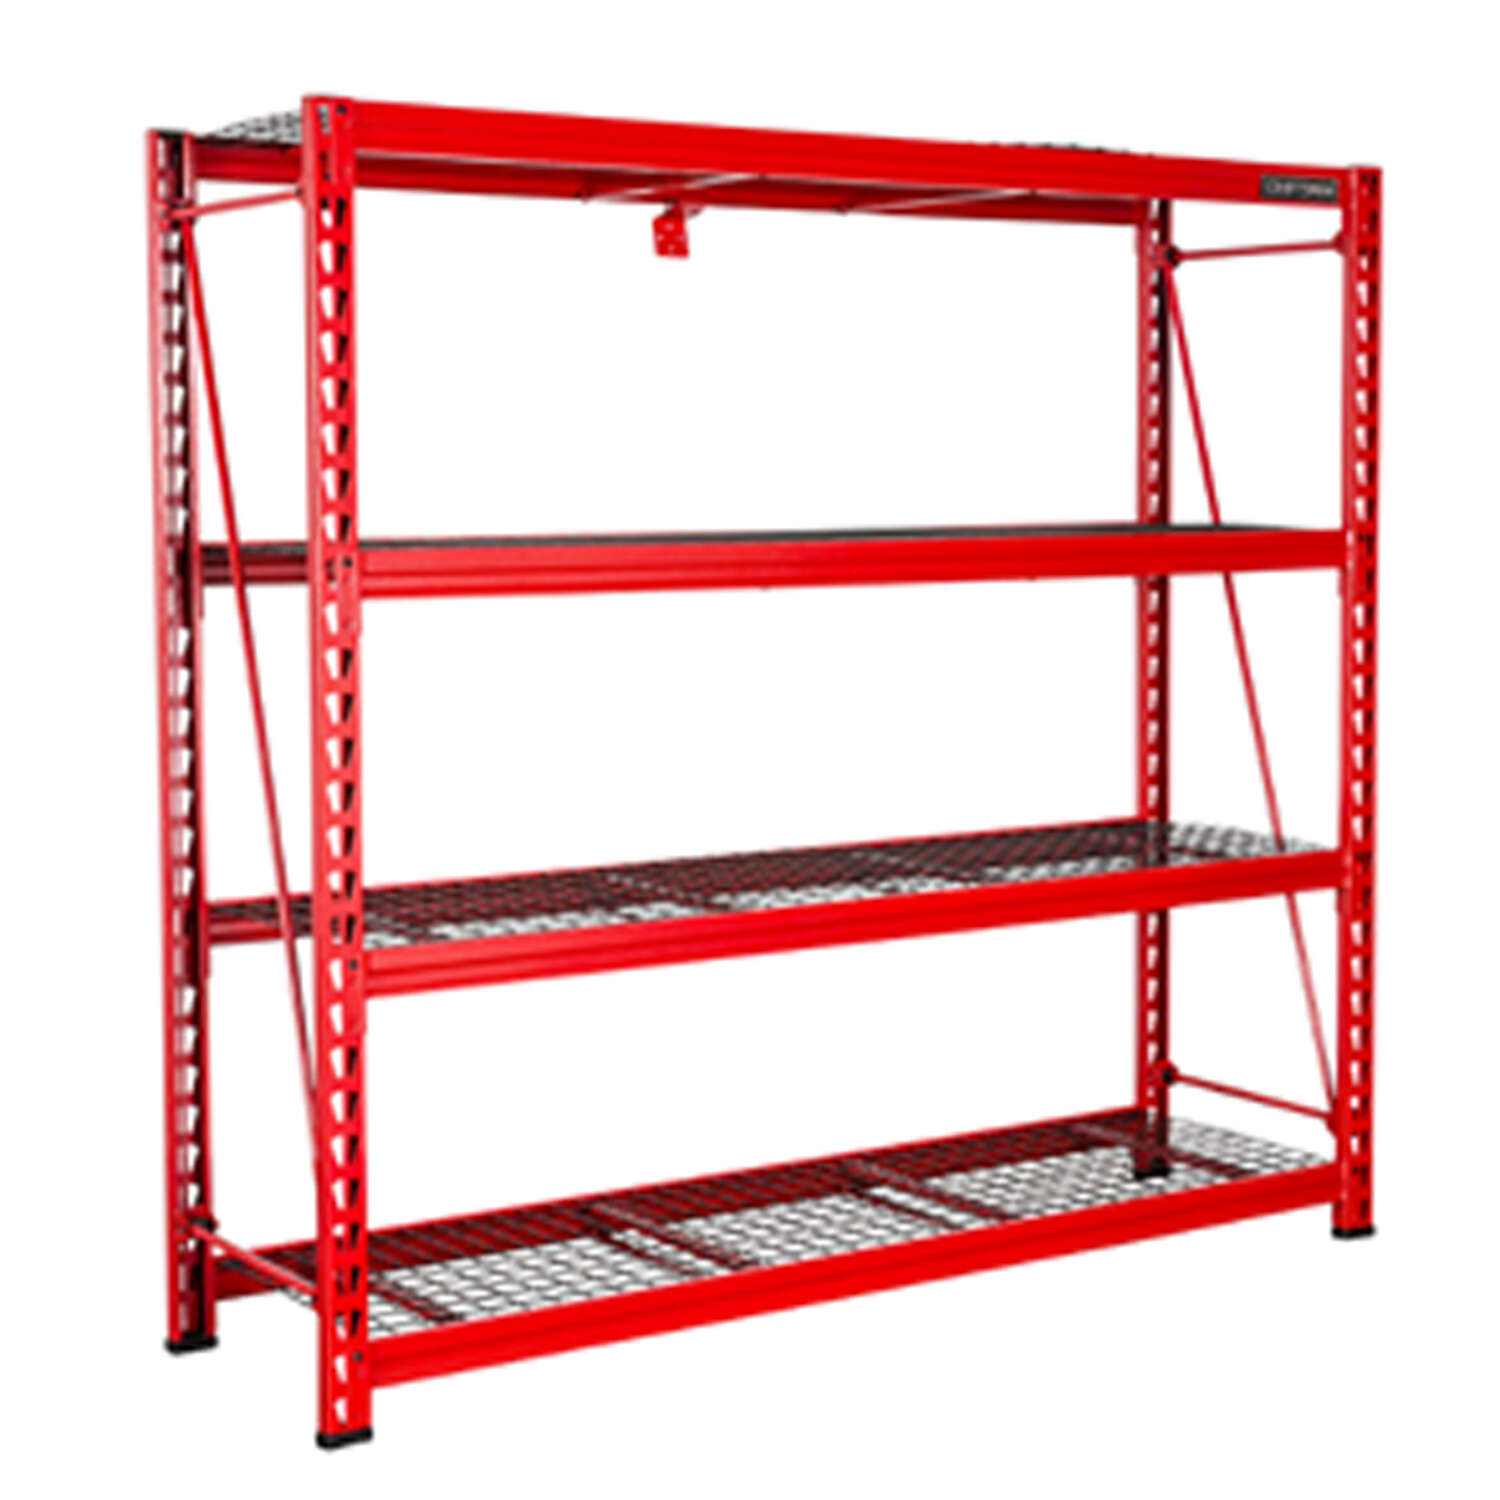 Craftsman  72 in. H x 77 in. W x 22 in. D Metal  Shelving Unit